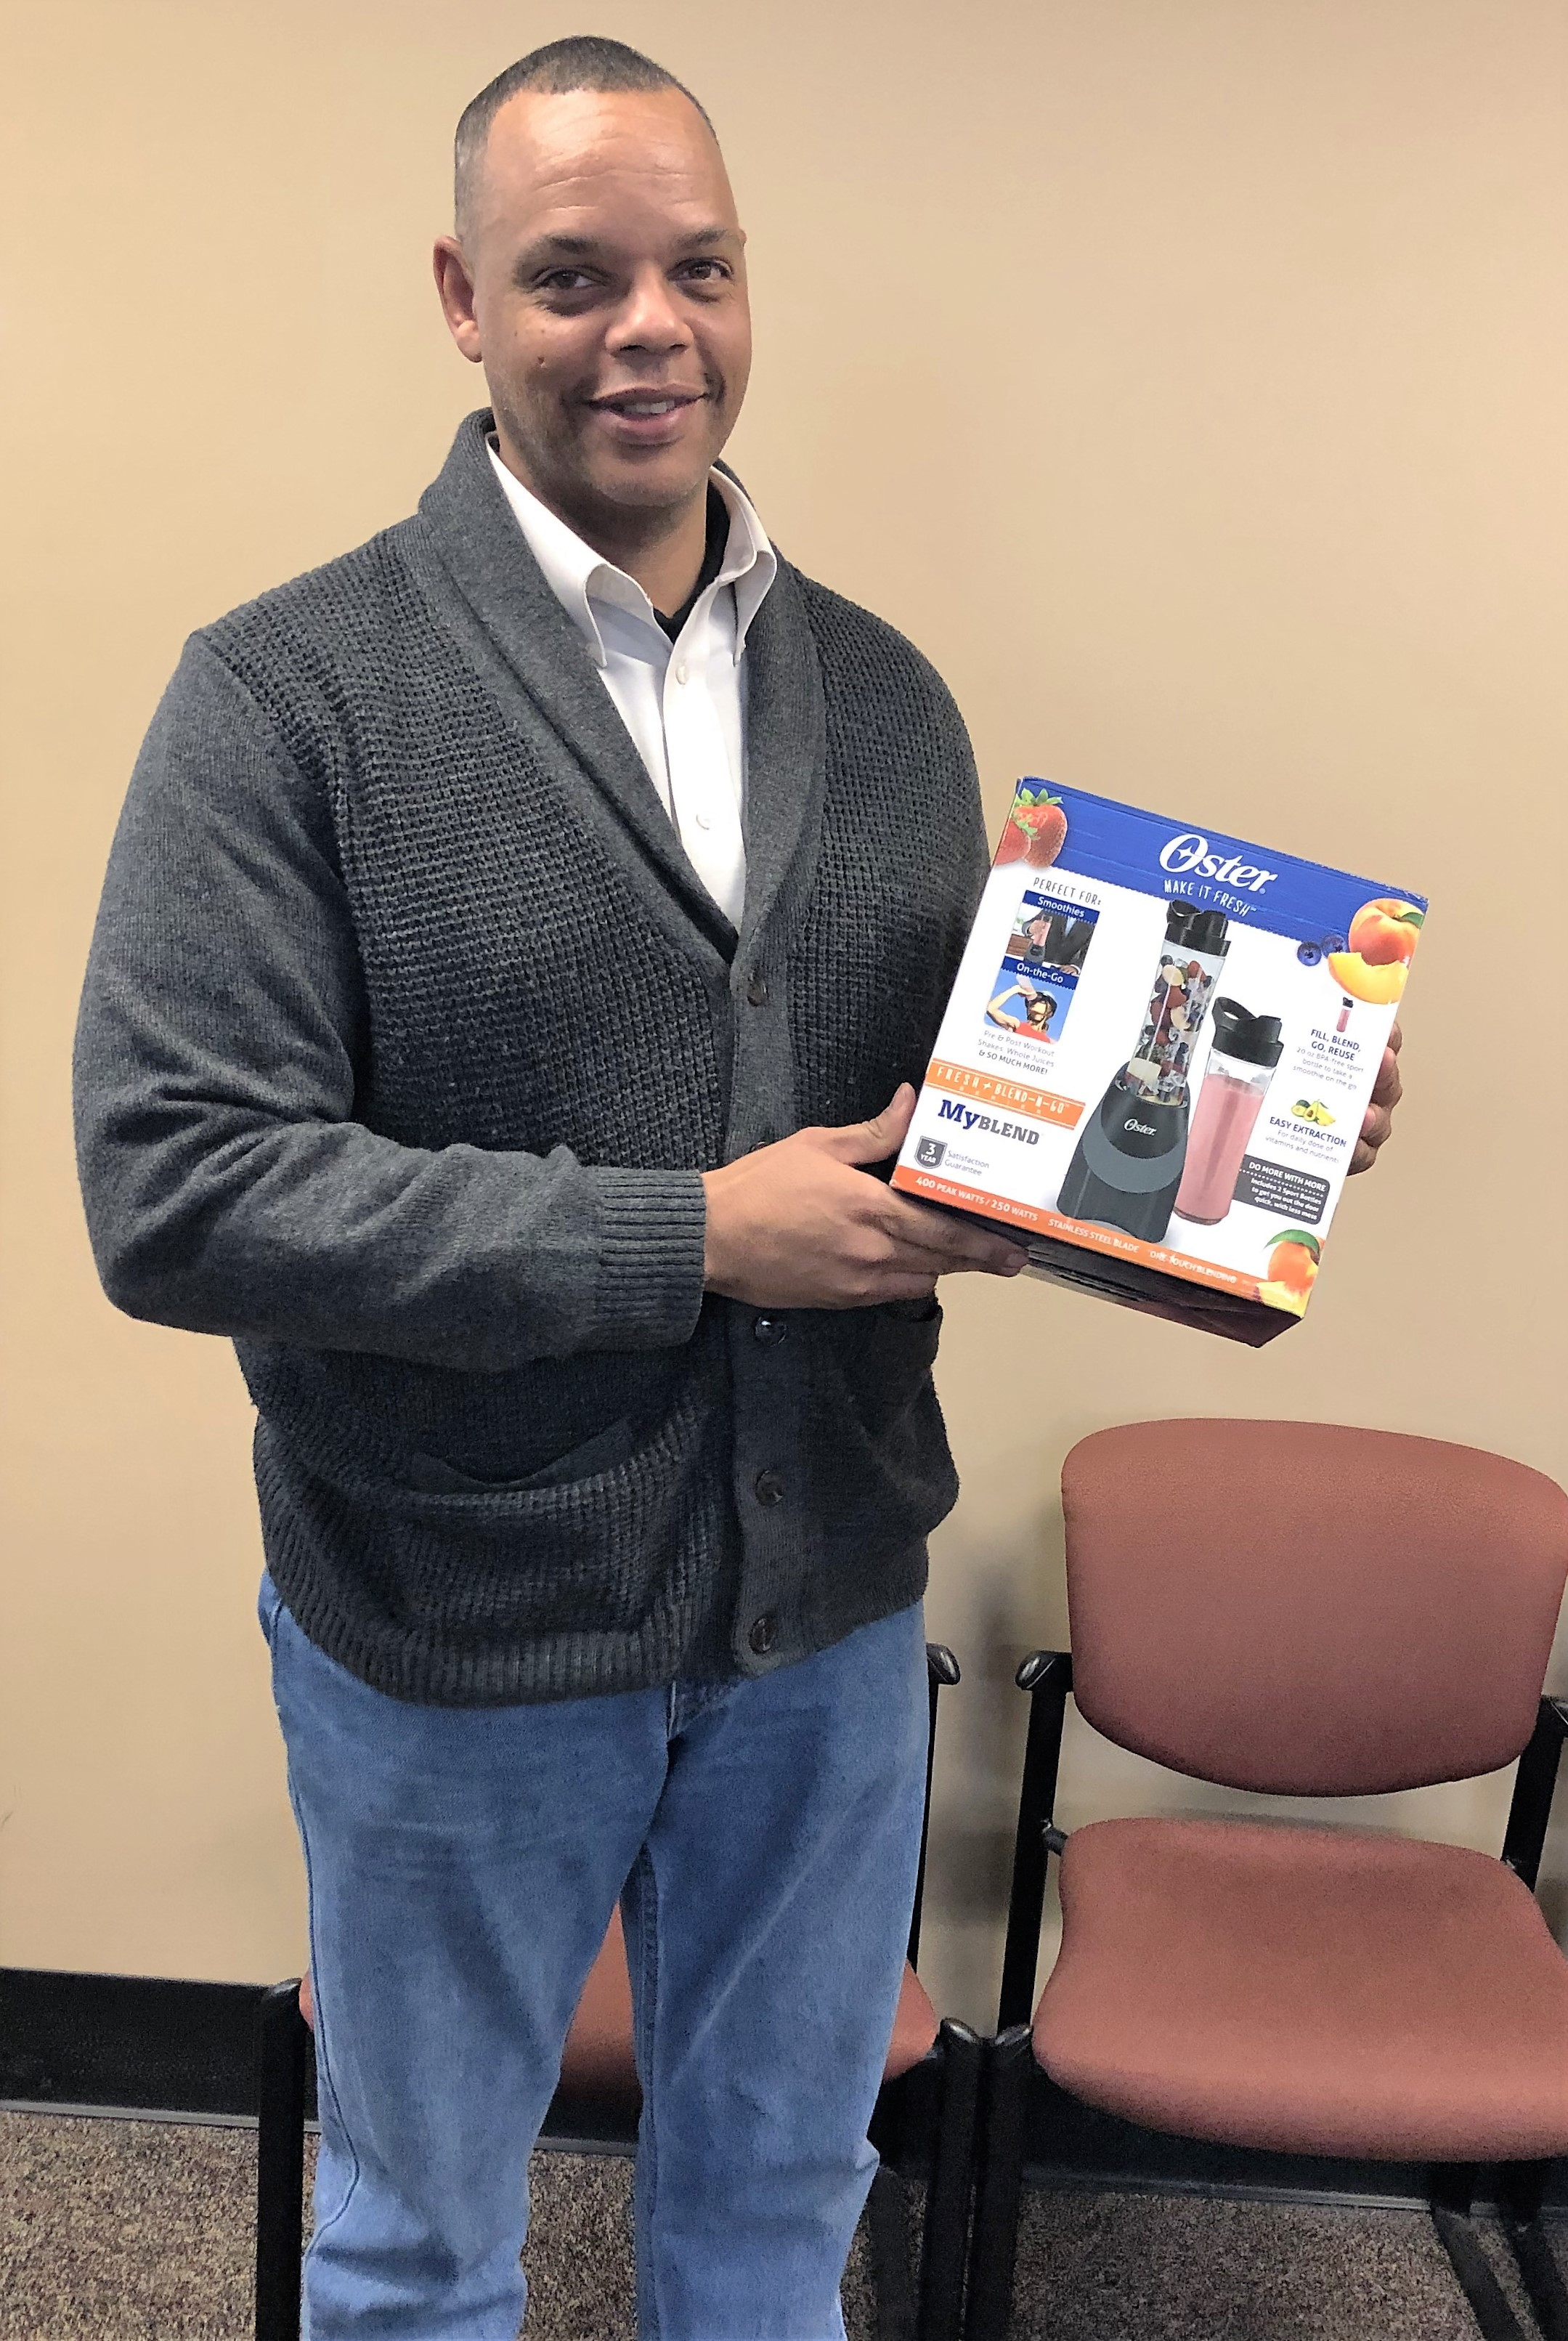 Kevin Bruce won the door prize, a personal blender.